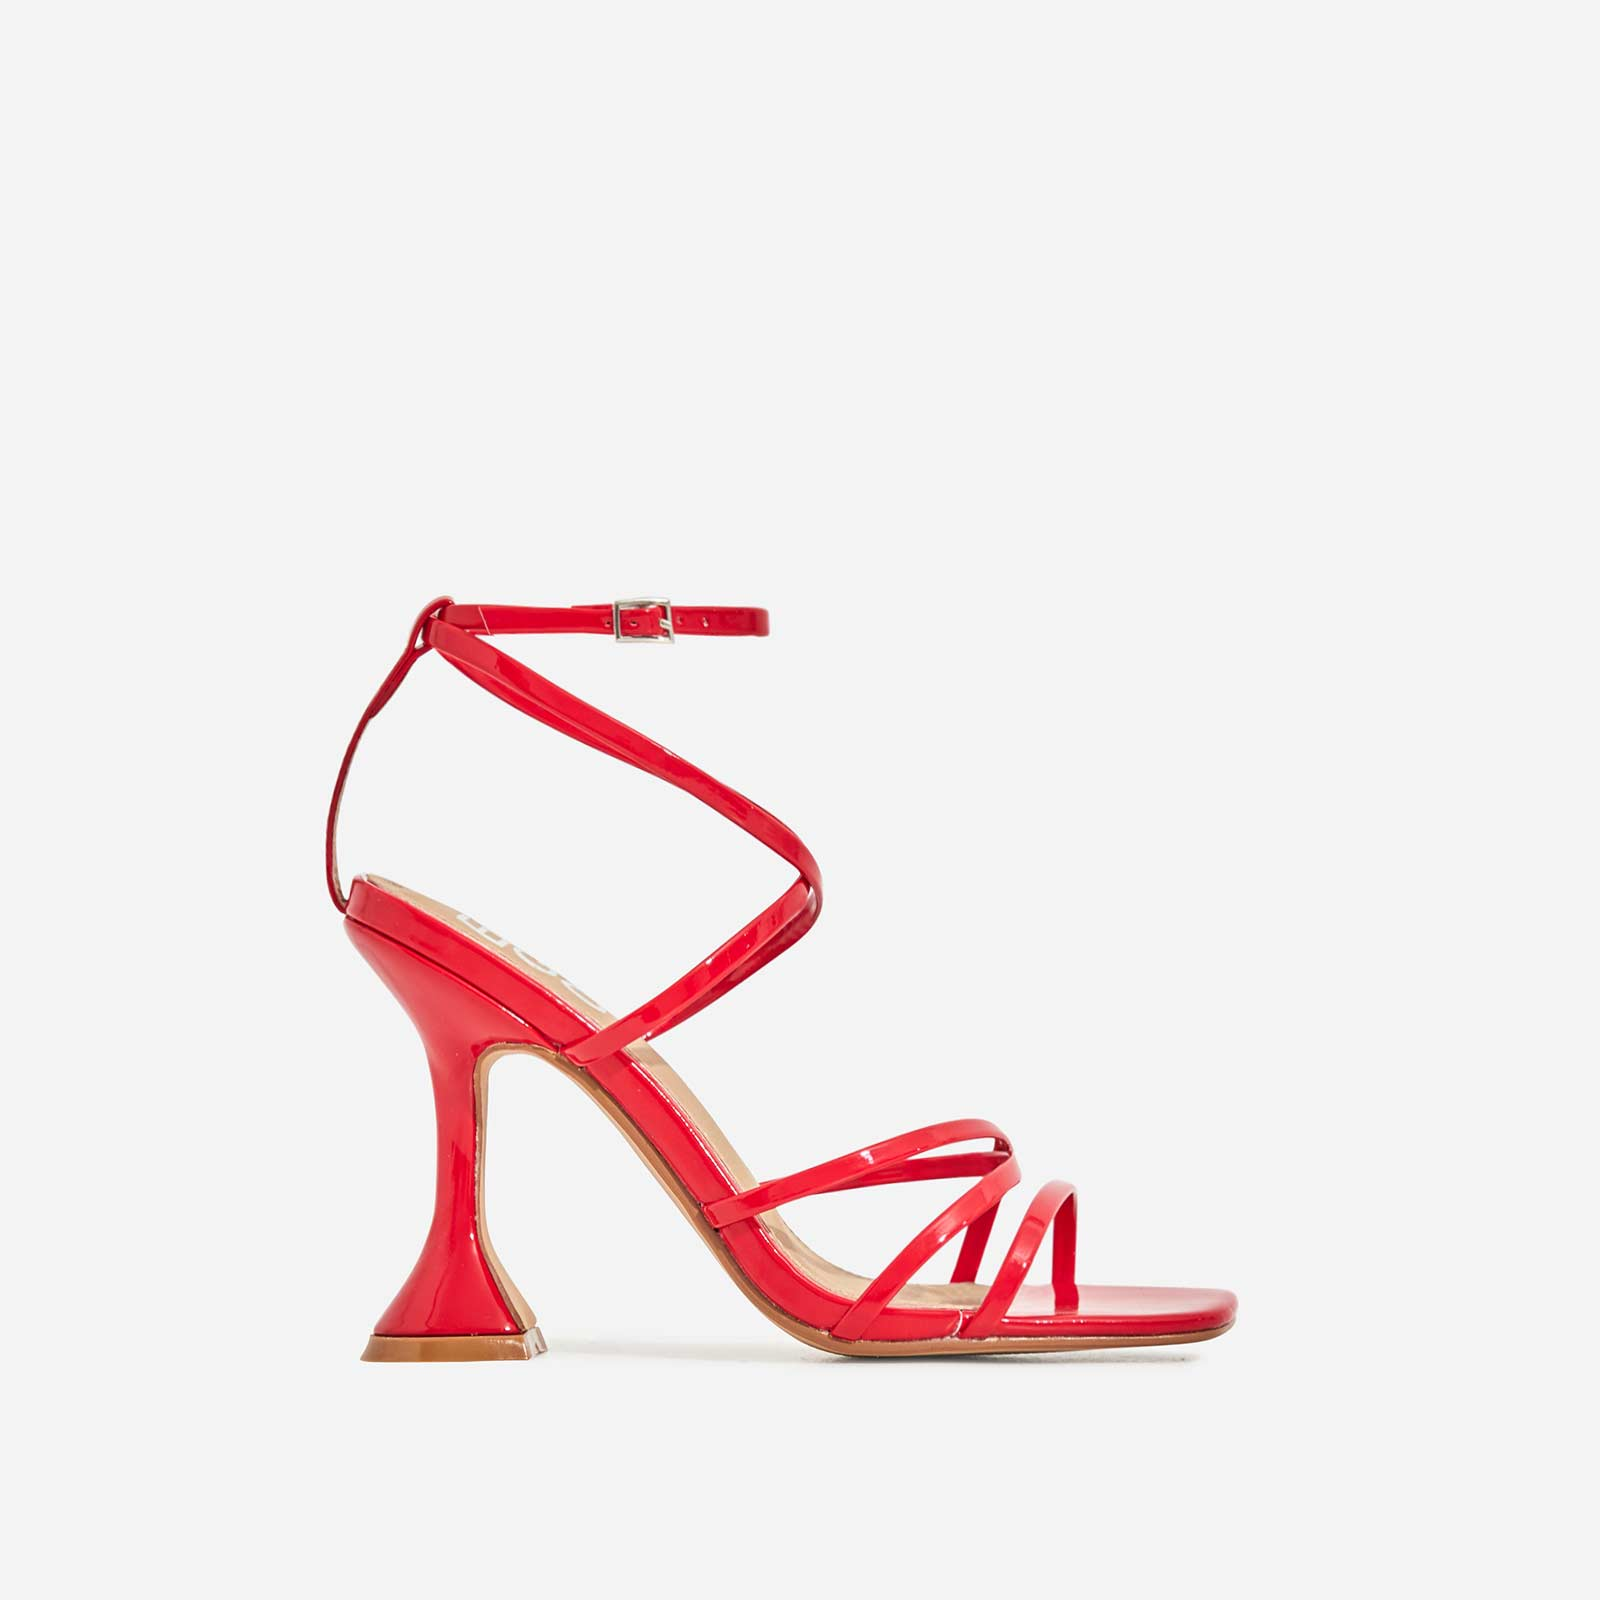 Richie Square Toe Heel In Red Patent